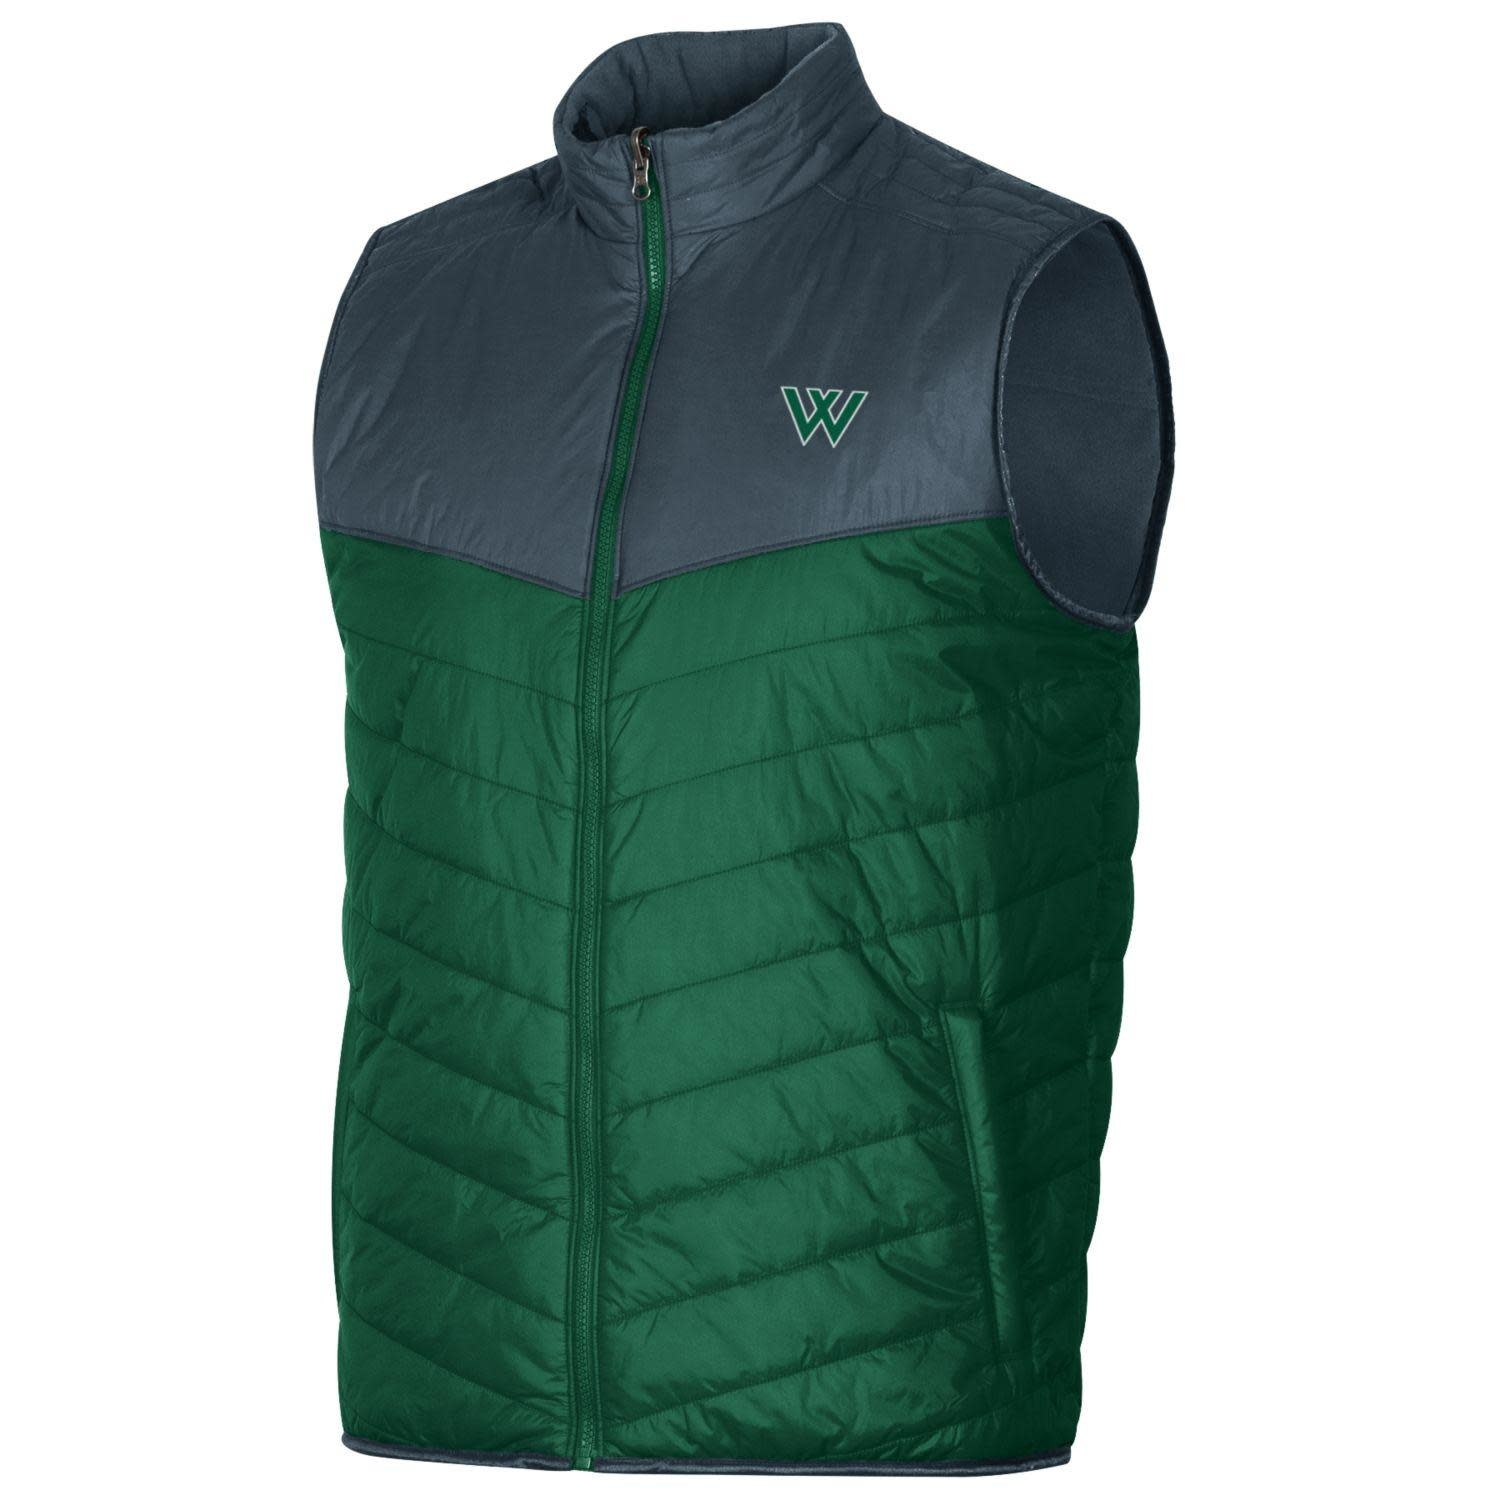 Under Armour Vest: Gameday Reversible Puffer